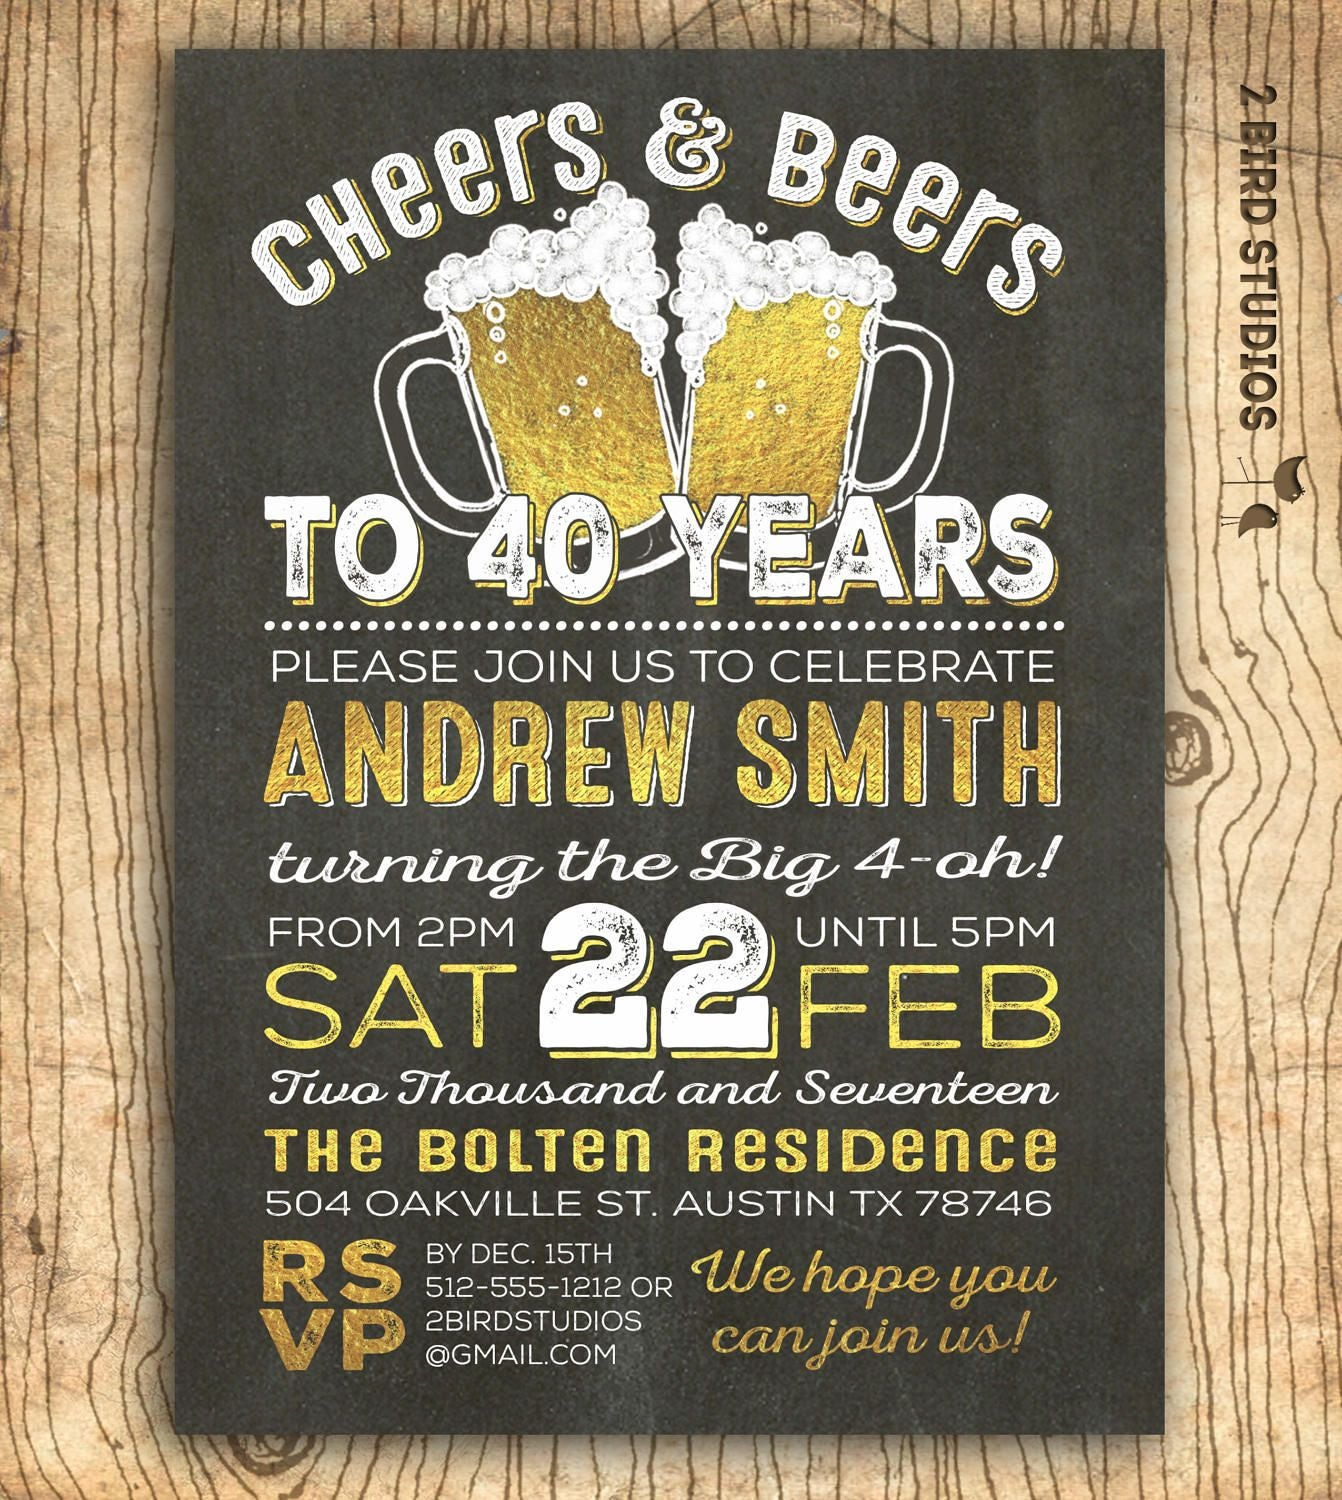 40th Birthday Invitation For Men Cheers & Beers To 40 Years